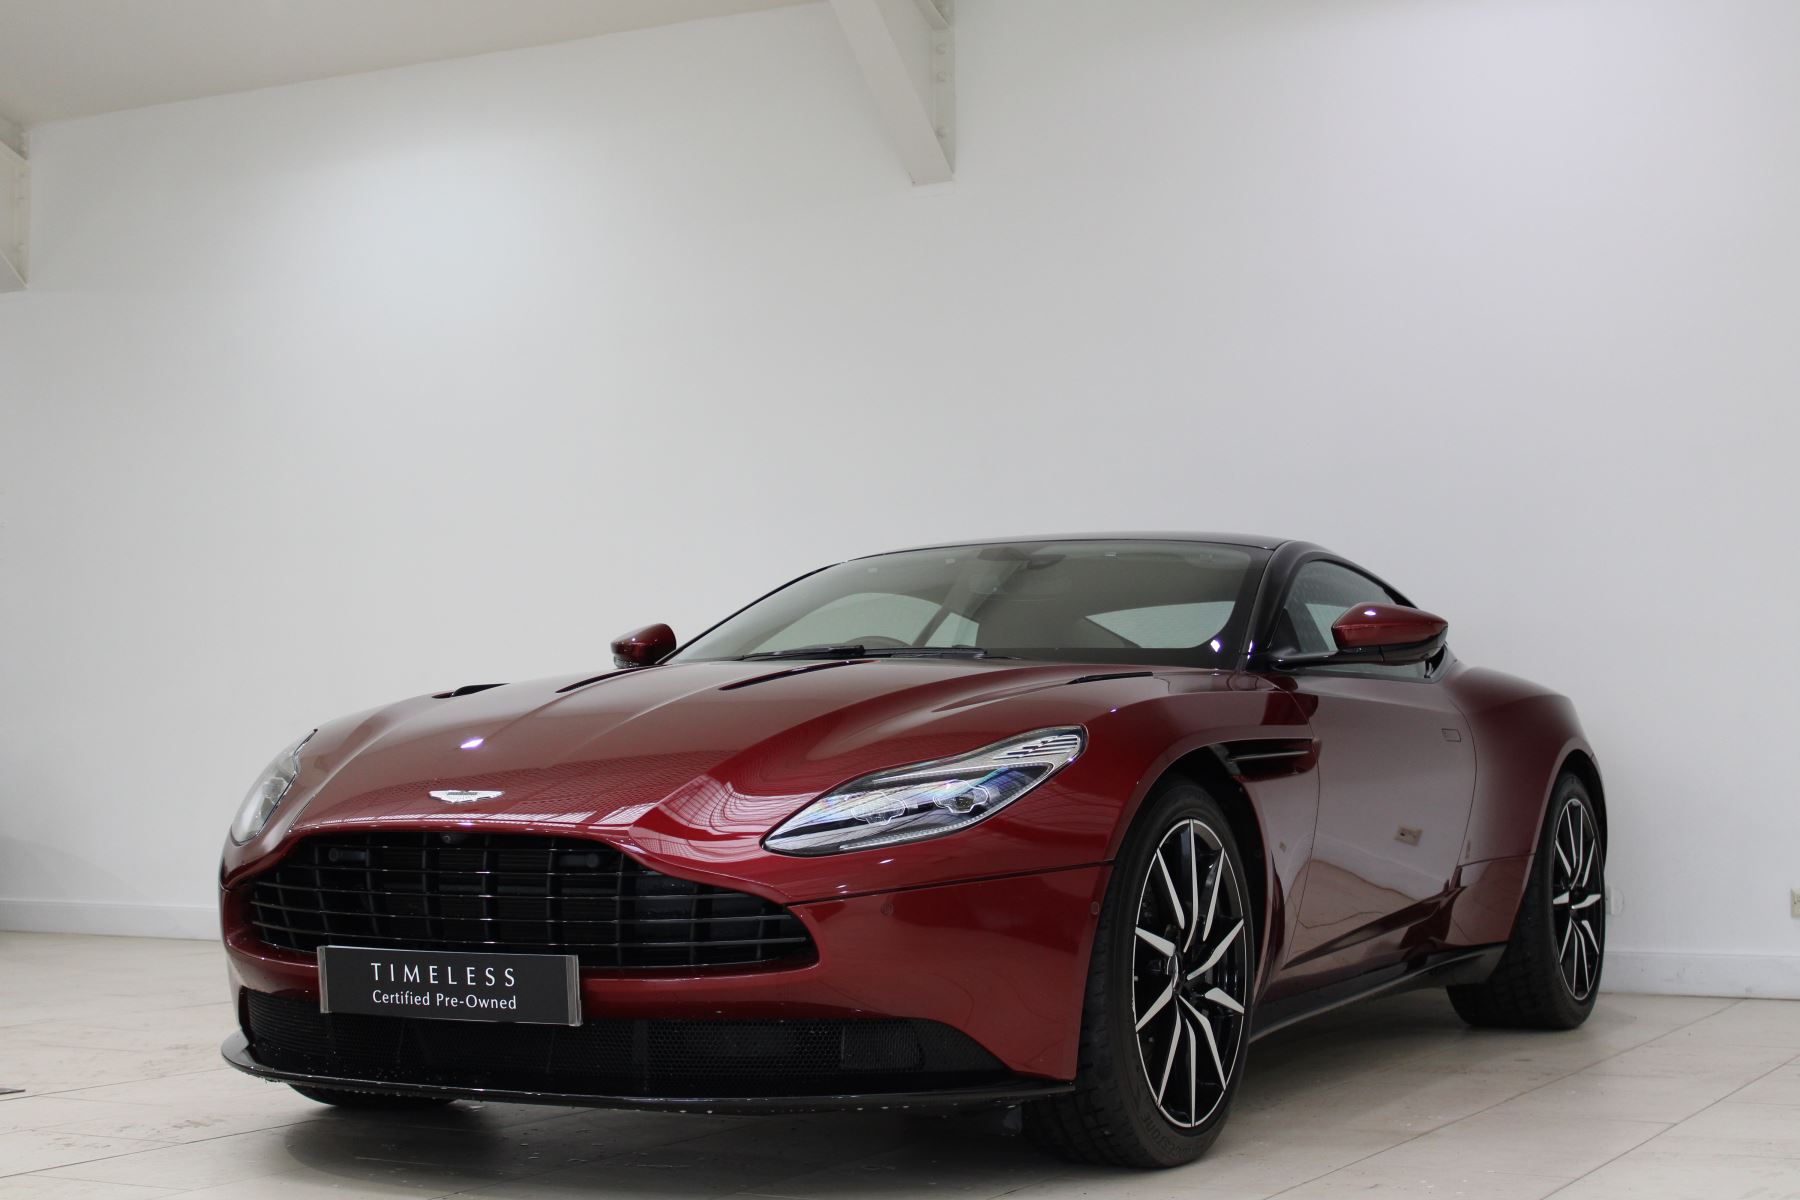 Aston Martin DB11 V12 2dr Touchtronic 5.2 Automatic Coupe (2018)